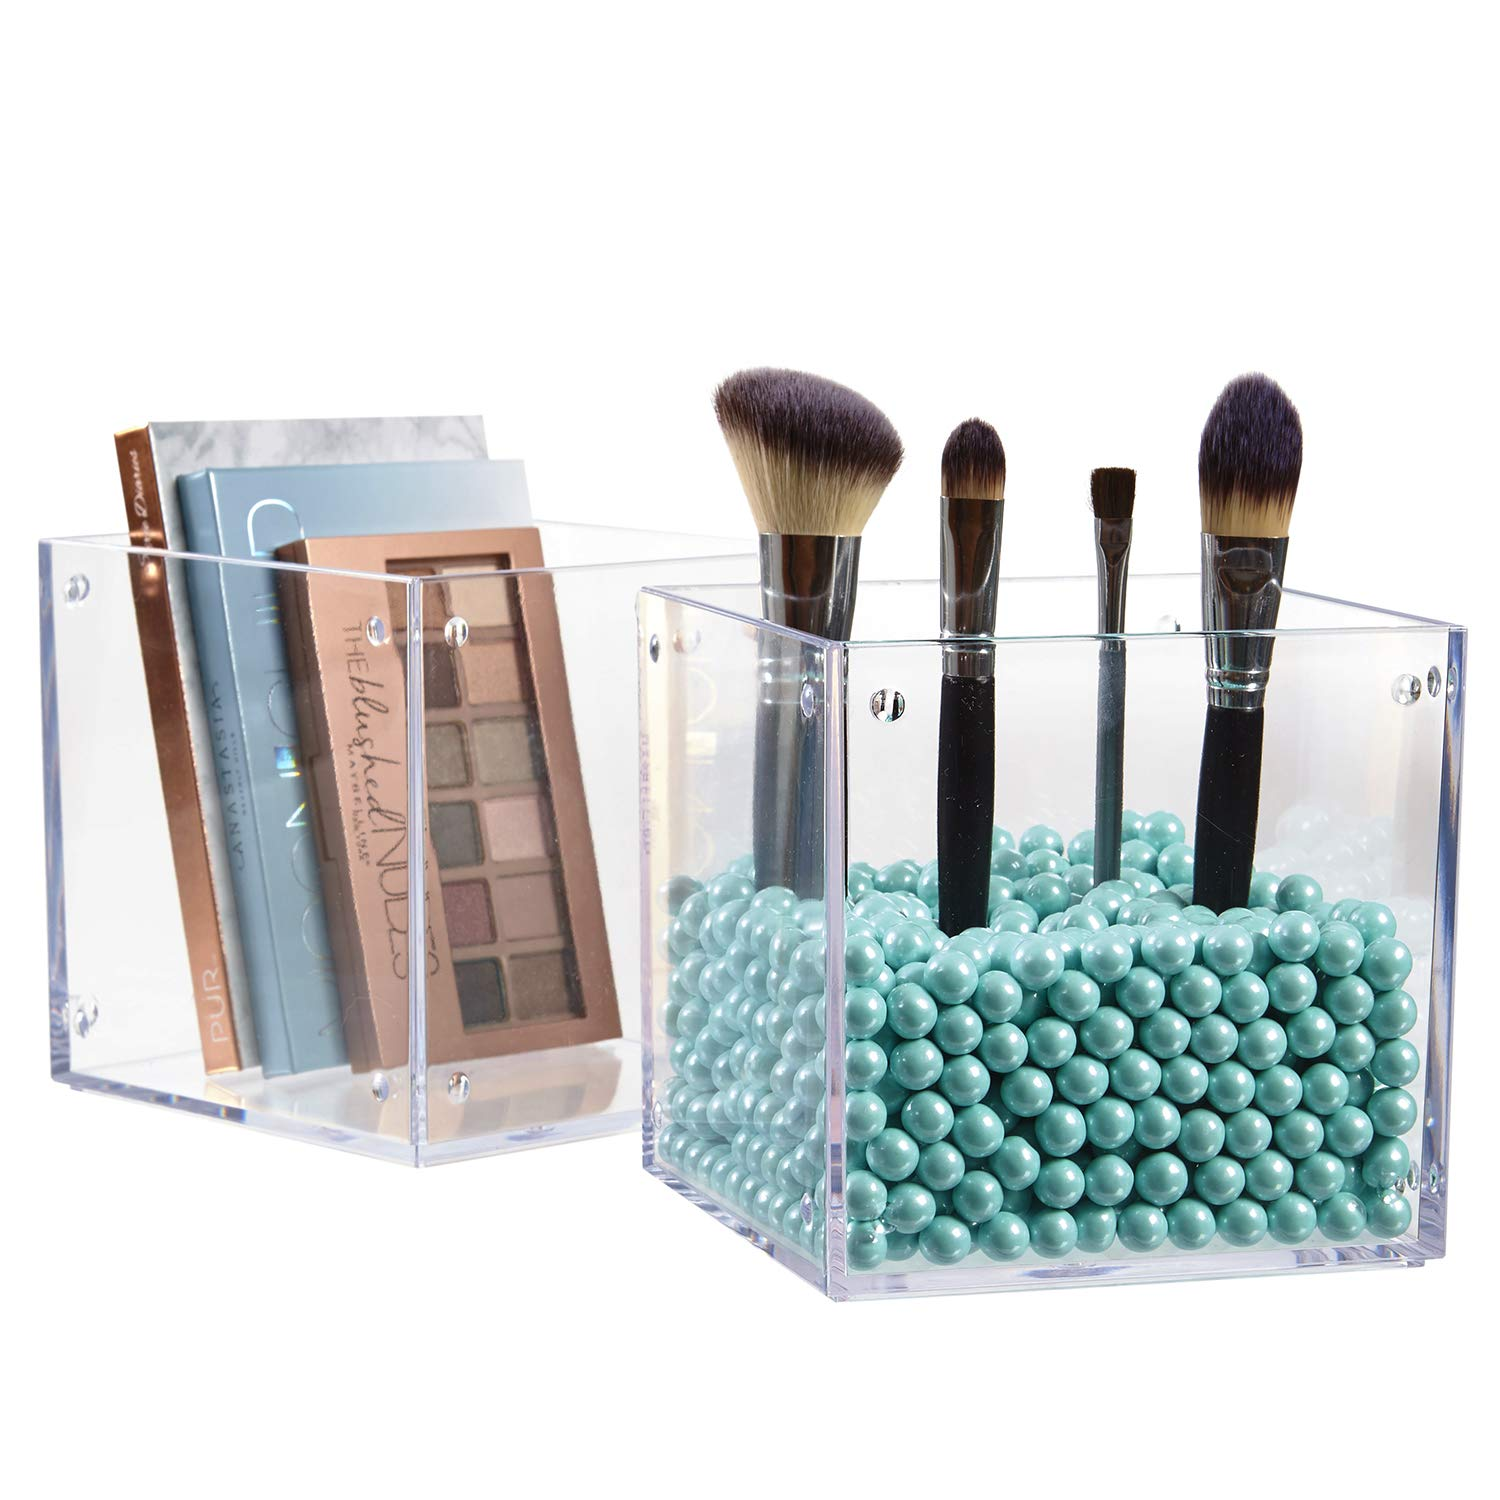 STORi Clear Plastic Stackable Makeup Storage and Display Cubes | Set of 2